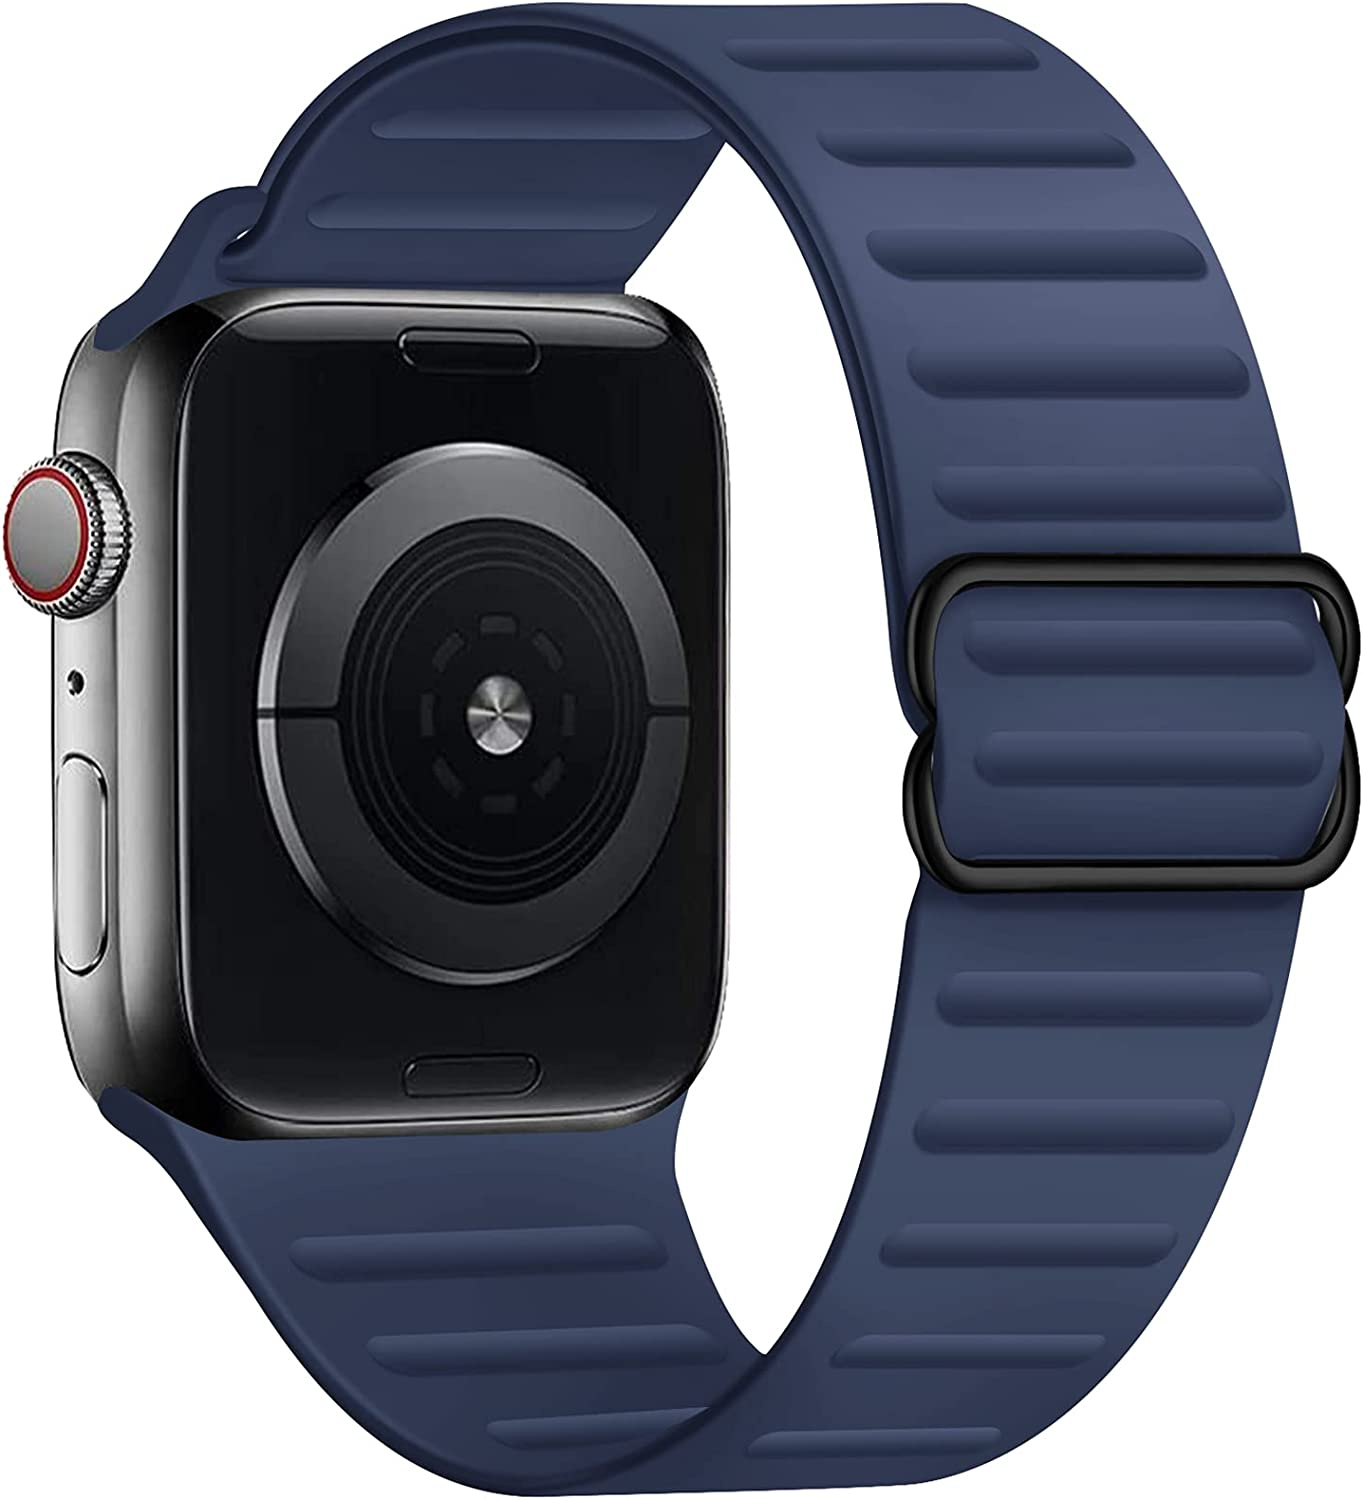 GZ GZHISY Stretchy Solo Loop Band Compatible for Apple Watch 38mm 40mm 42mm 44mm, Adjustable Elastic Silicone Sport Buckle Strap Women Men for iWatch Series 1/2/3/4/5/6/SE, Midnight Blue 42mm/44mm